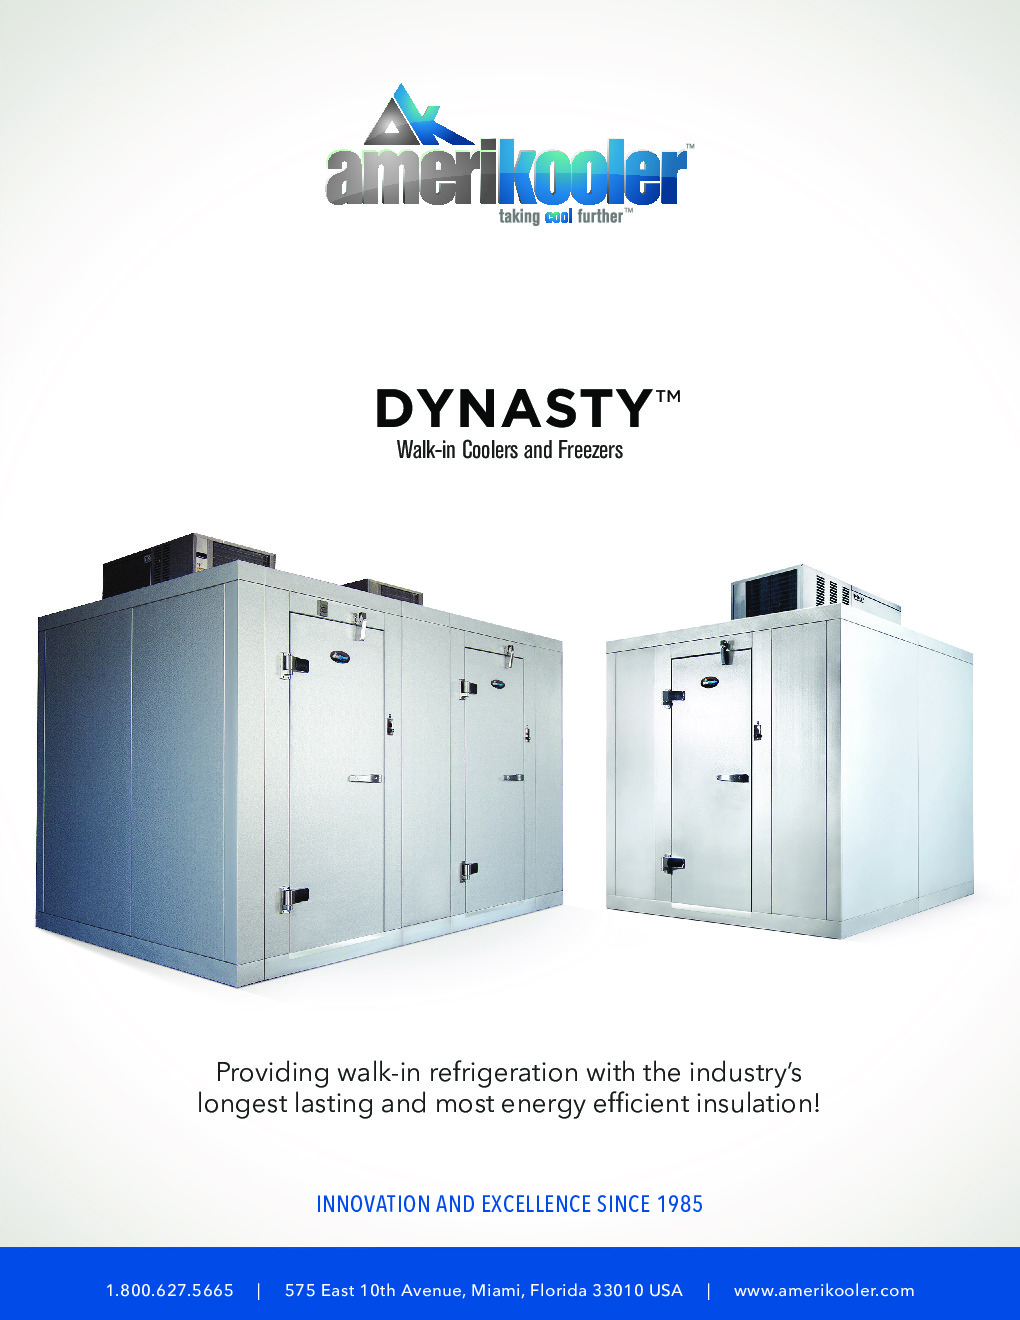 AmeriKooler DW101477N-5/9-SC 10' X 14' Walk-In Cooler, 9' L Cooler without Floor and 5' L Freezer, Self Contained